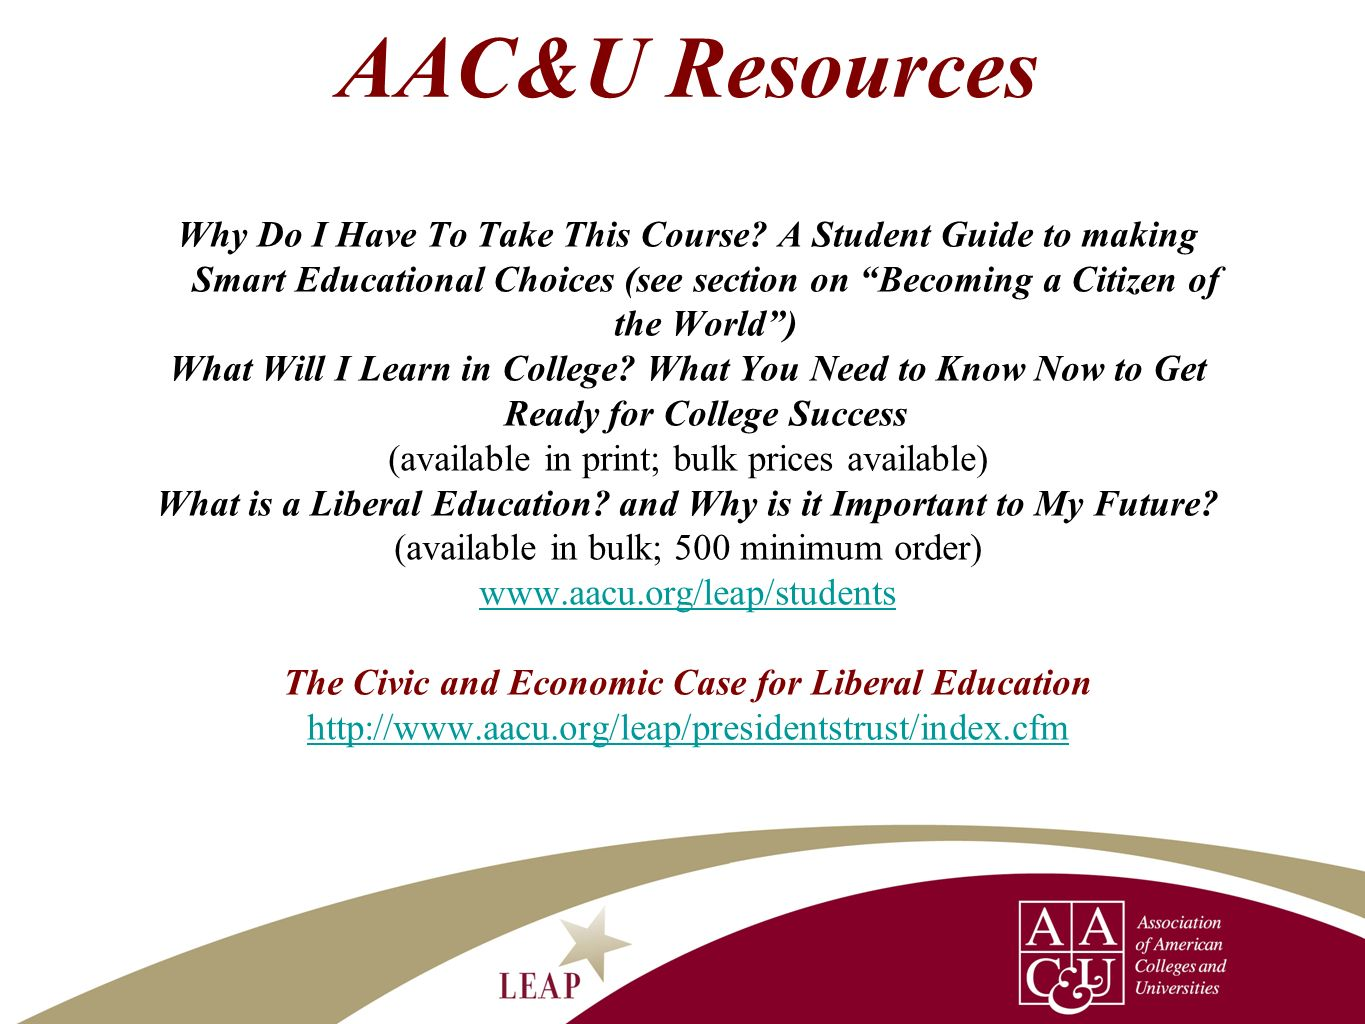 AAC&U Resources